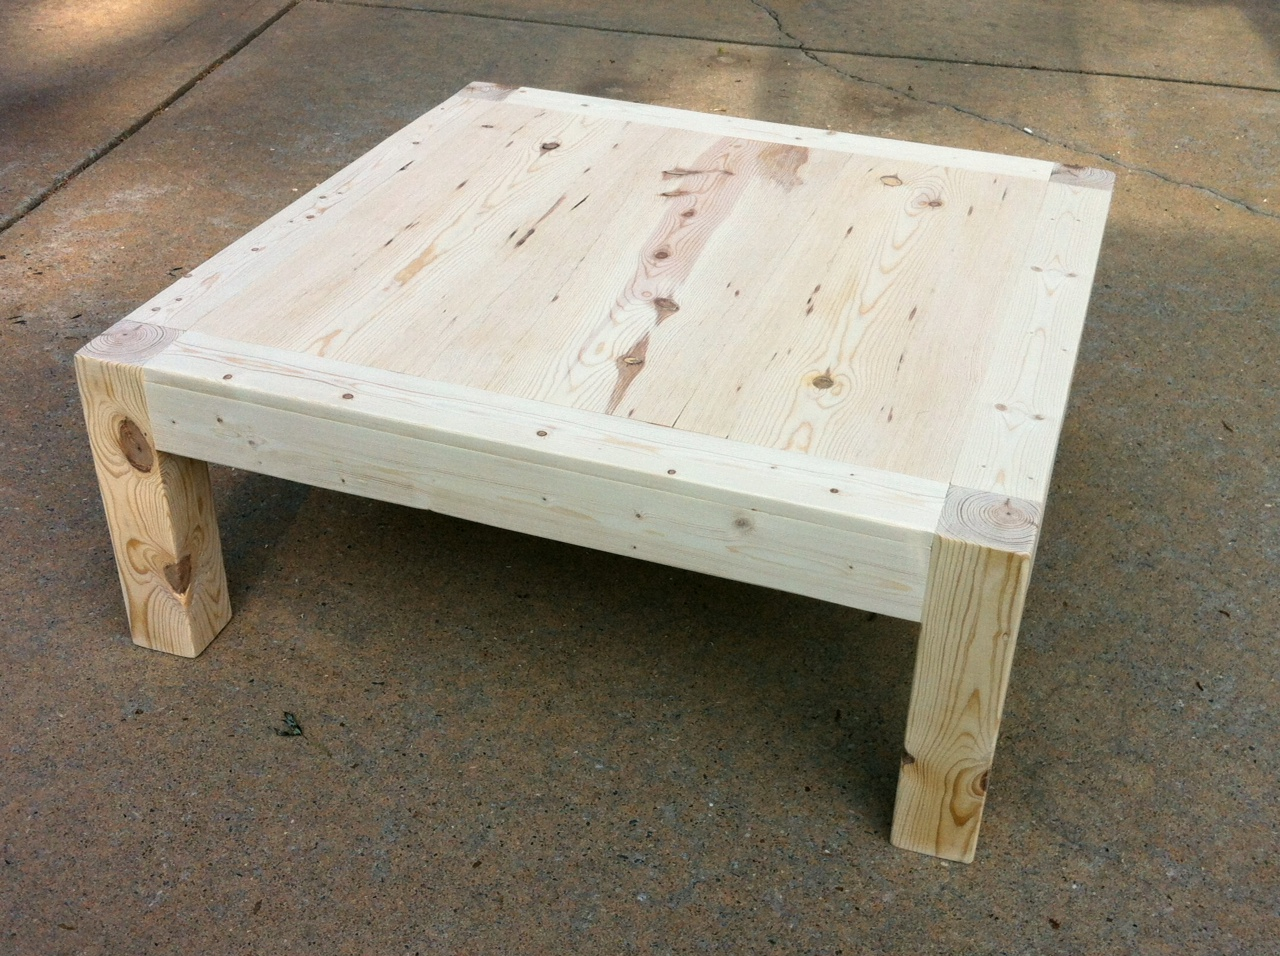 Jajake: Learn Diy 4x4 coffee table